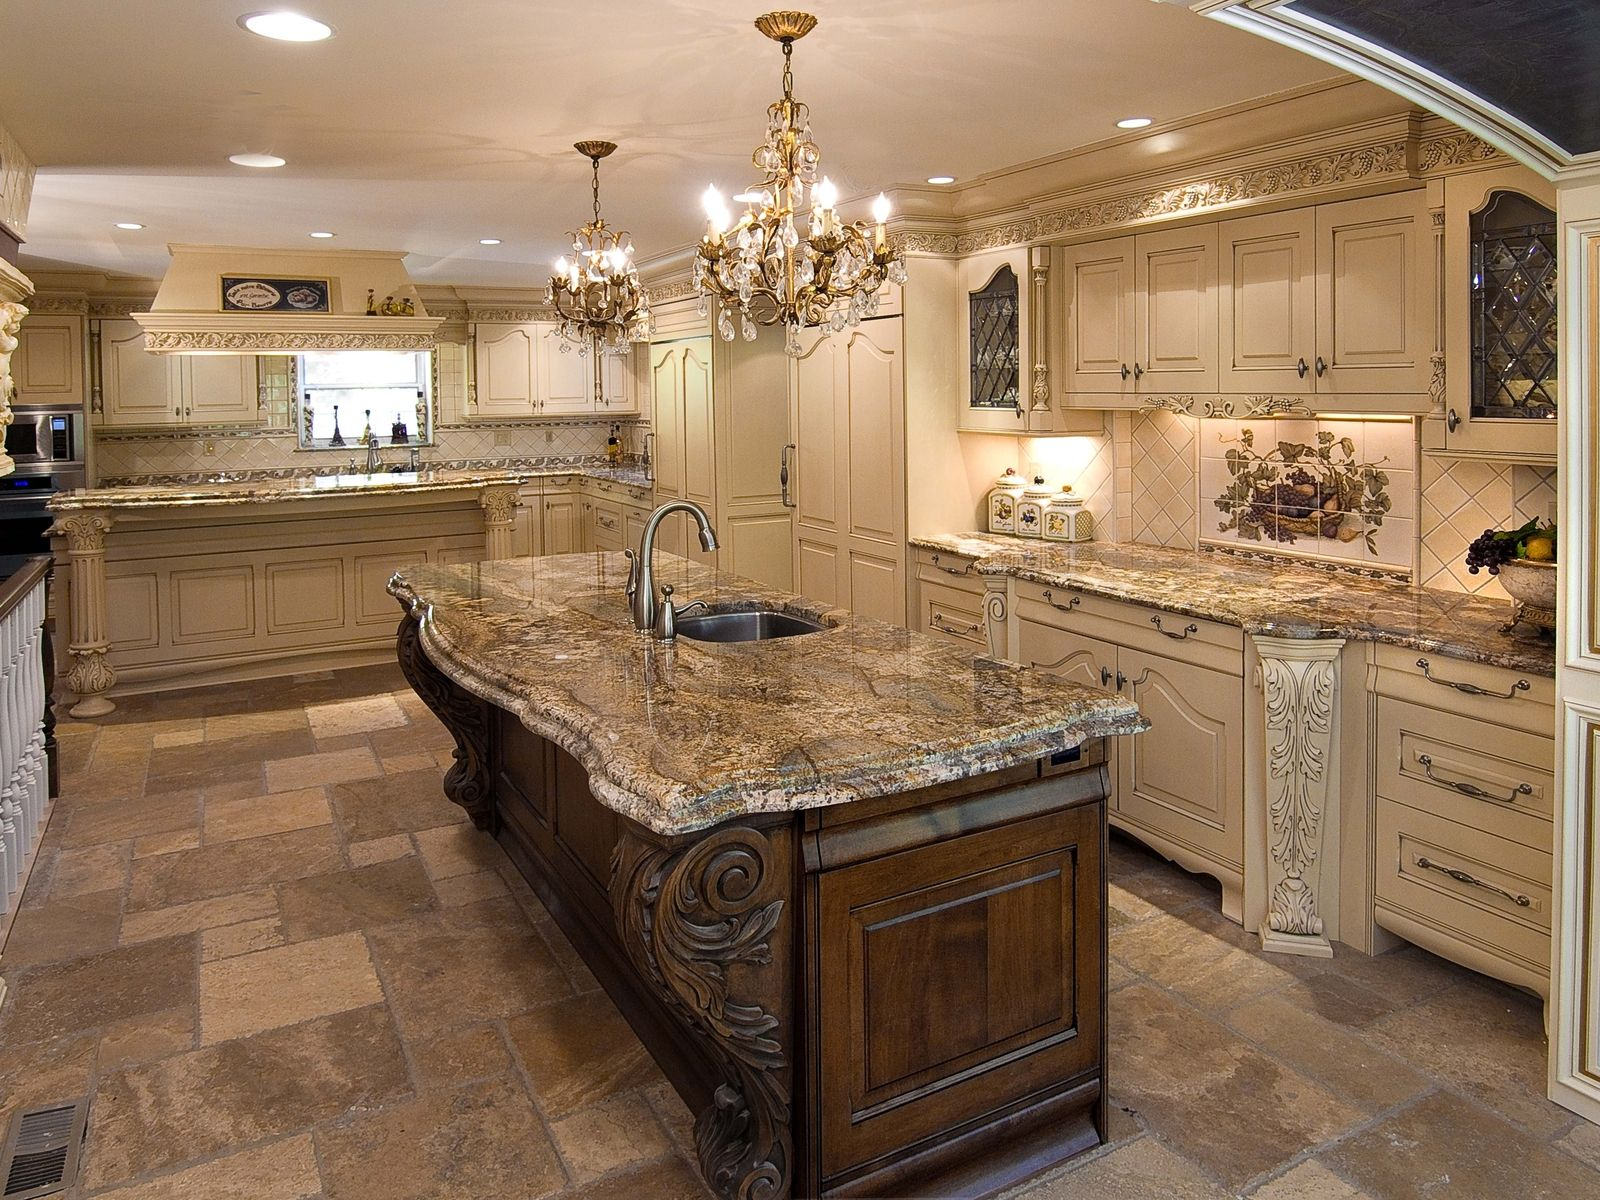 ornate kitchen cabinets custom made ornate kitchen by allgyer fine custom cabinetry